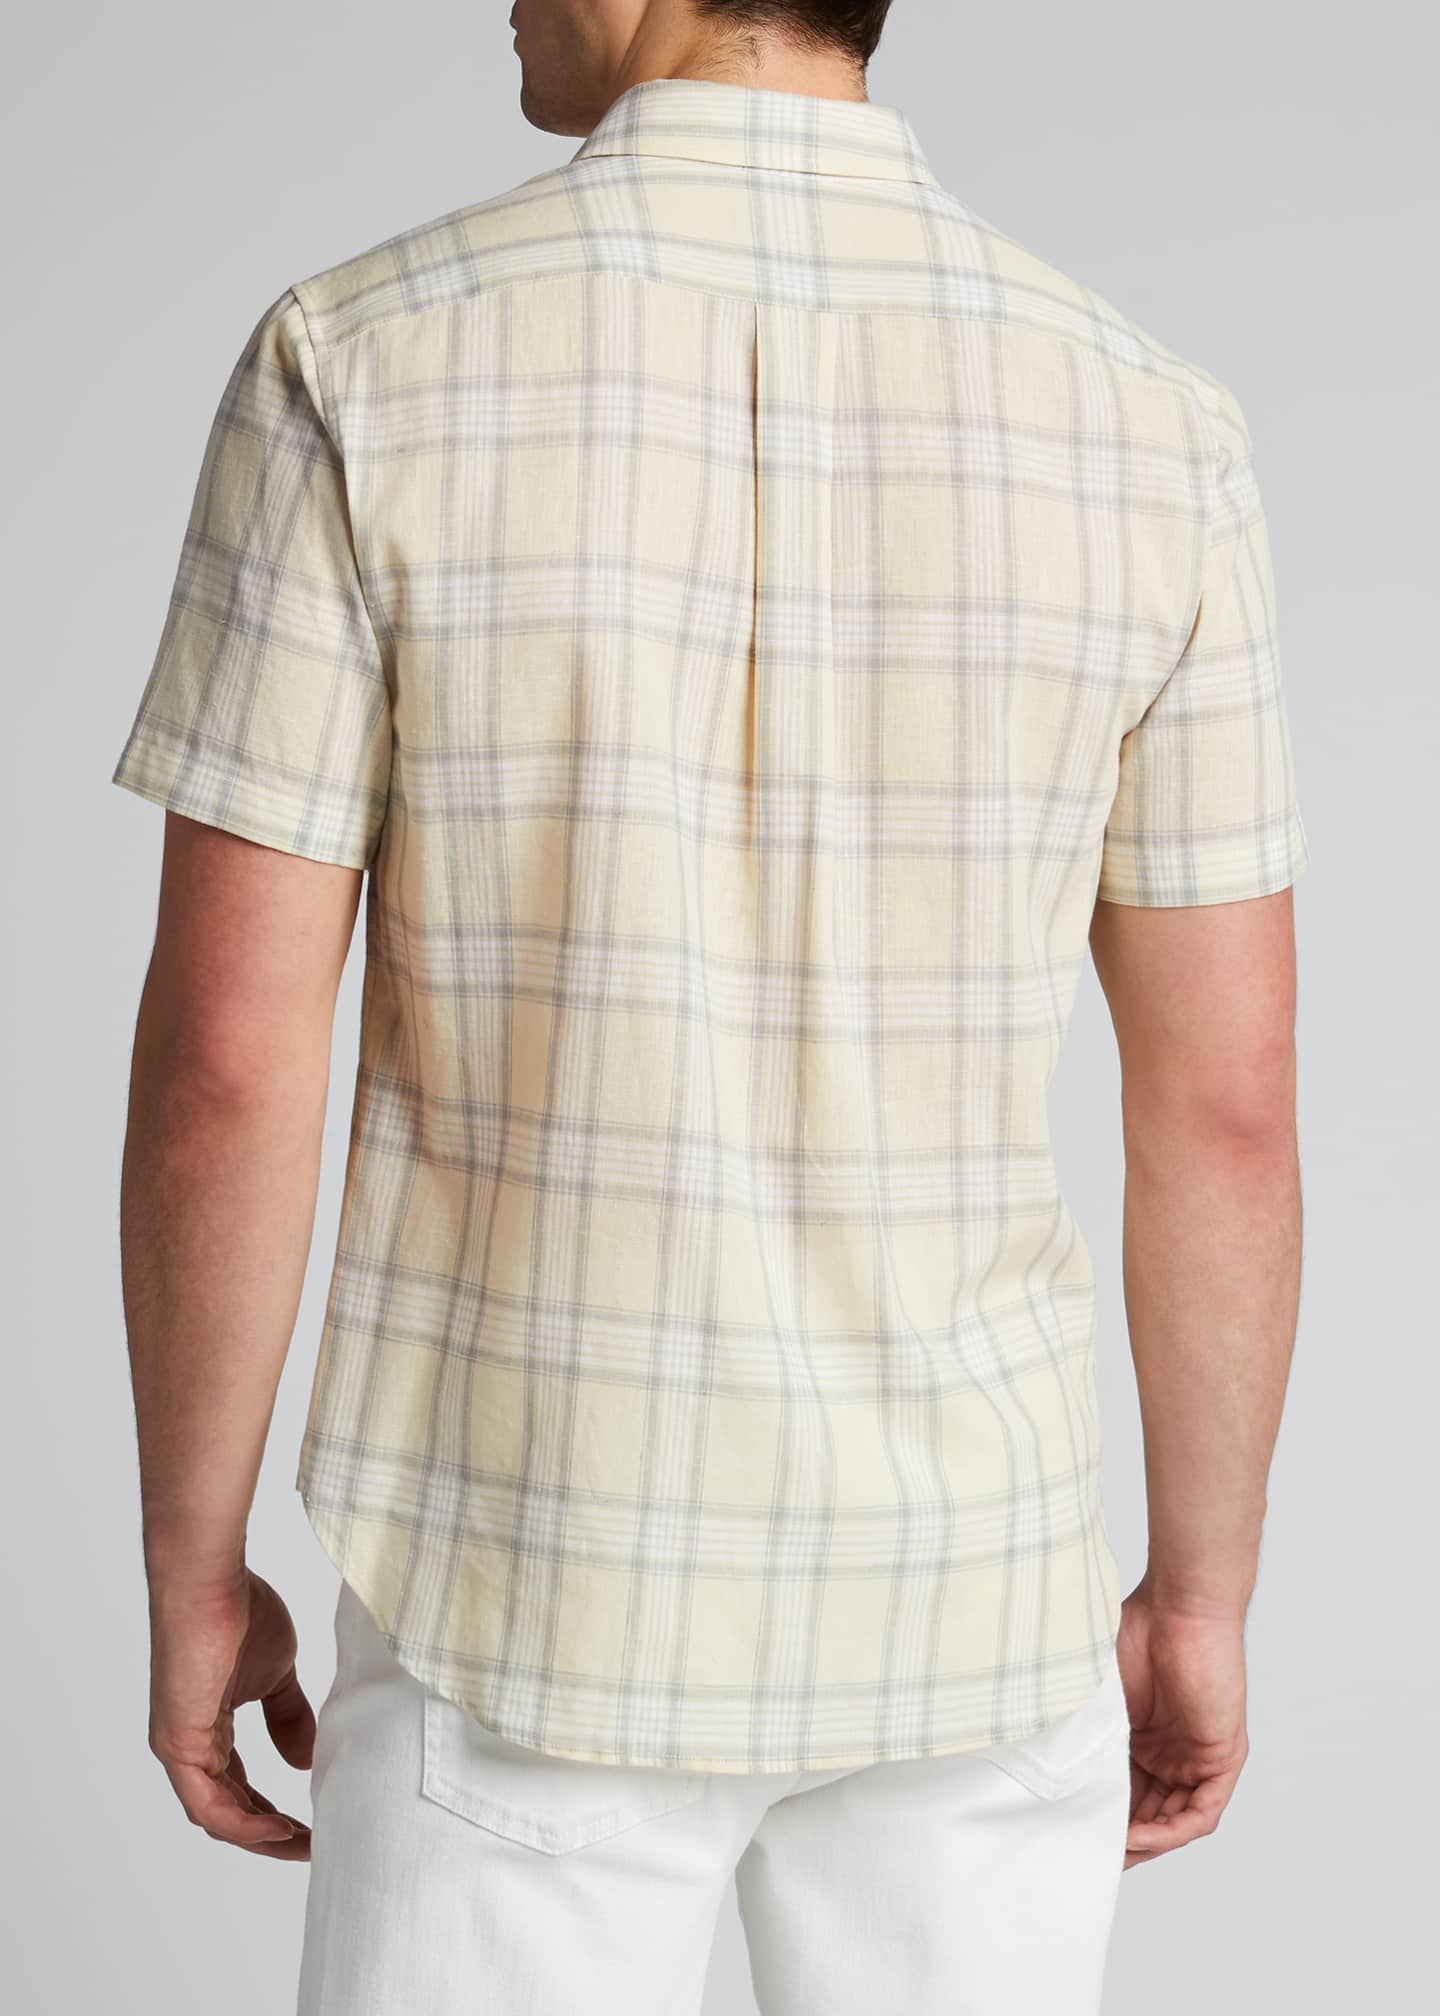 Image 2 of 5: Men's Linen Plaid Short-Sleeve Sport Shirt